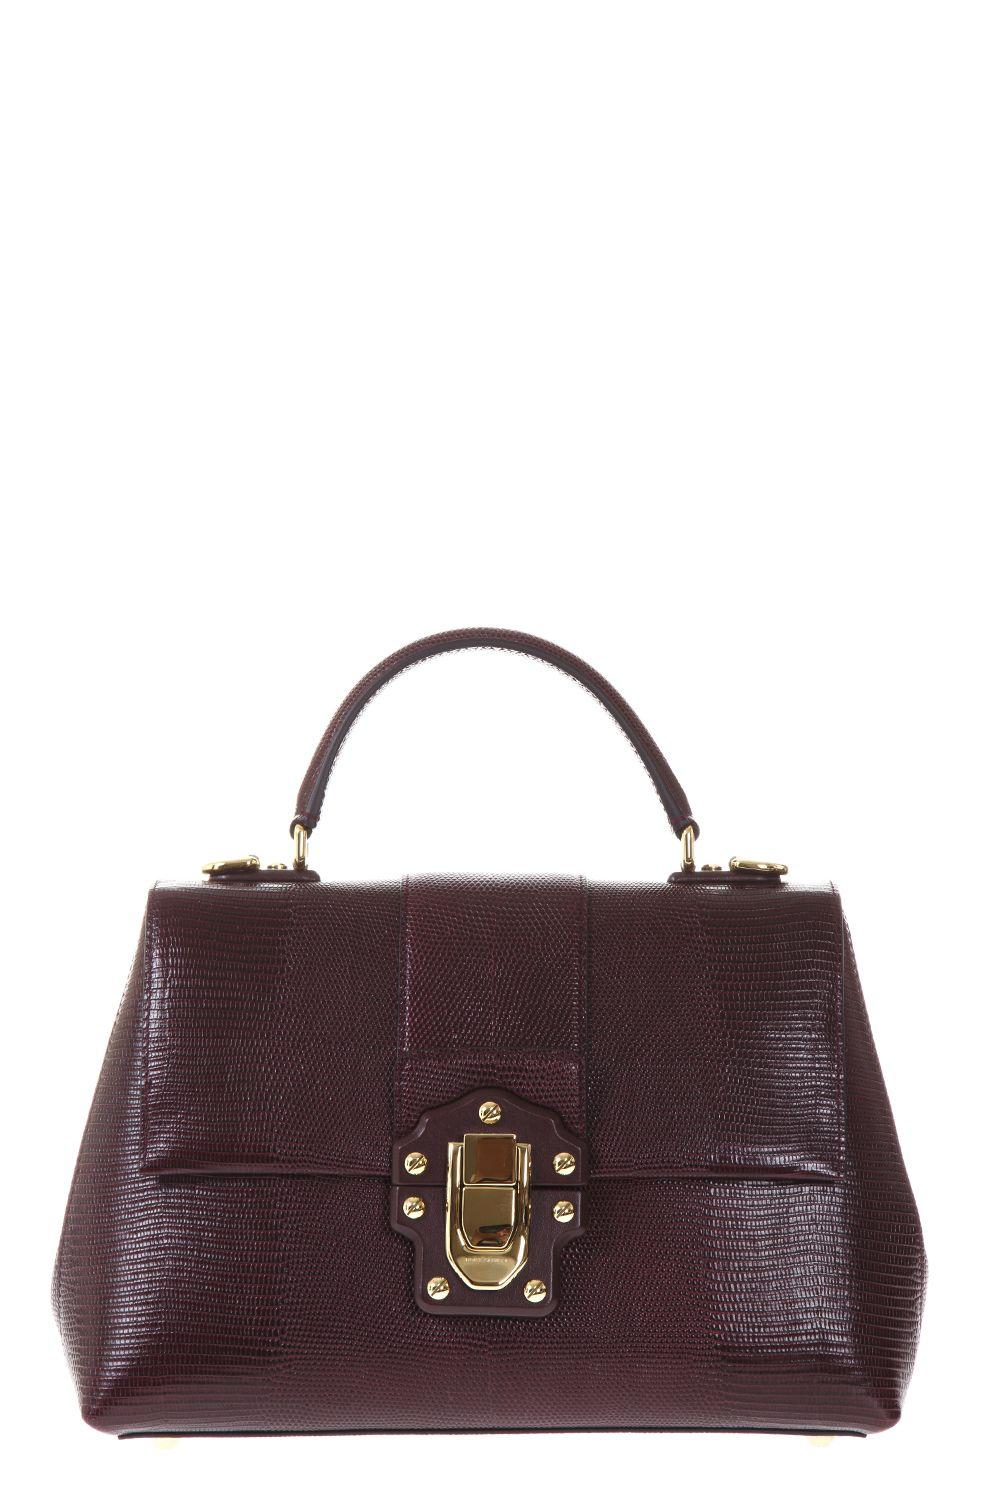 Dolce & Gabbana Lucia Printed Leather Bag In Wine